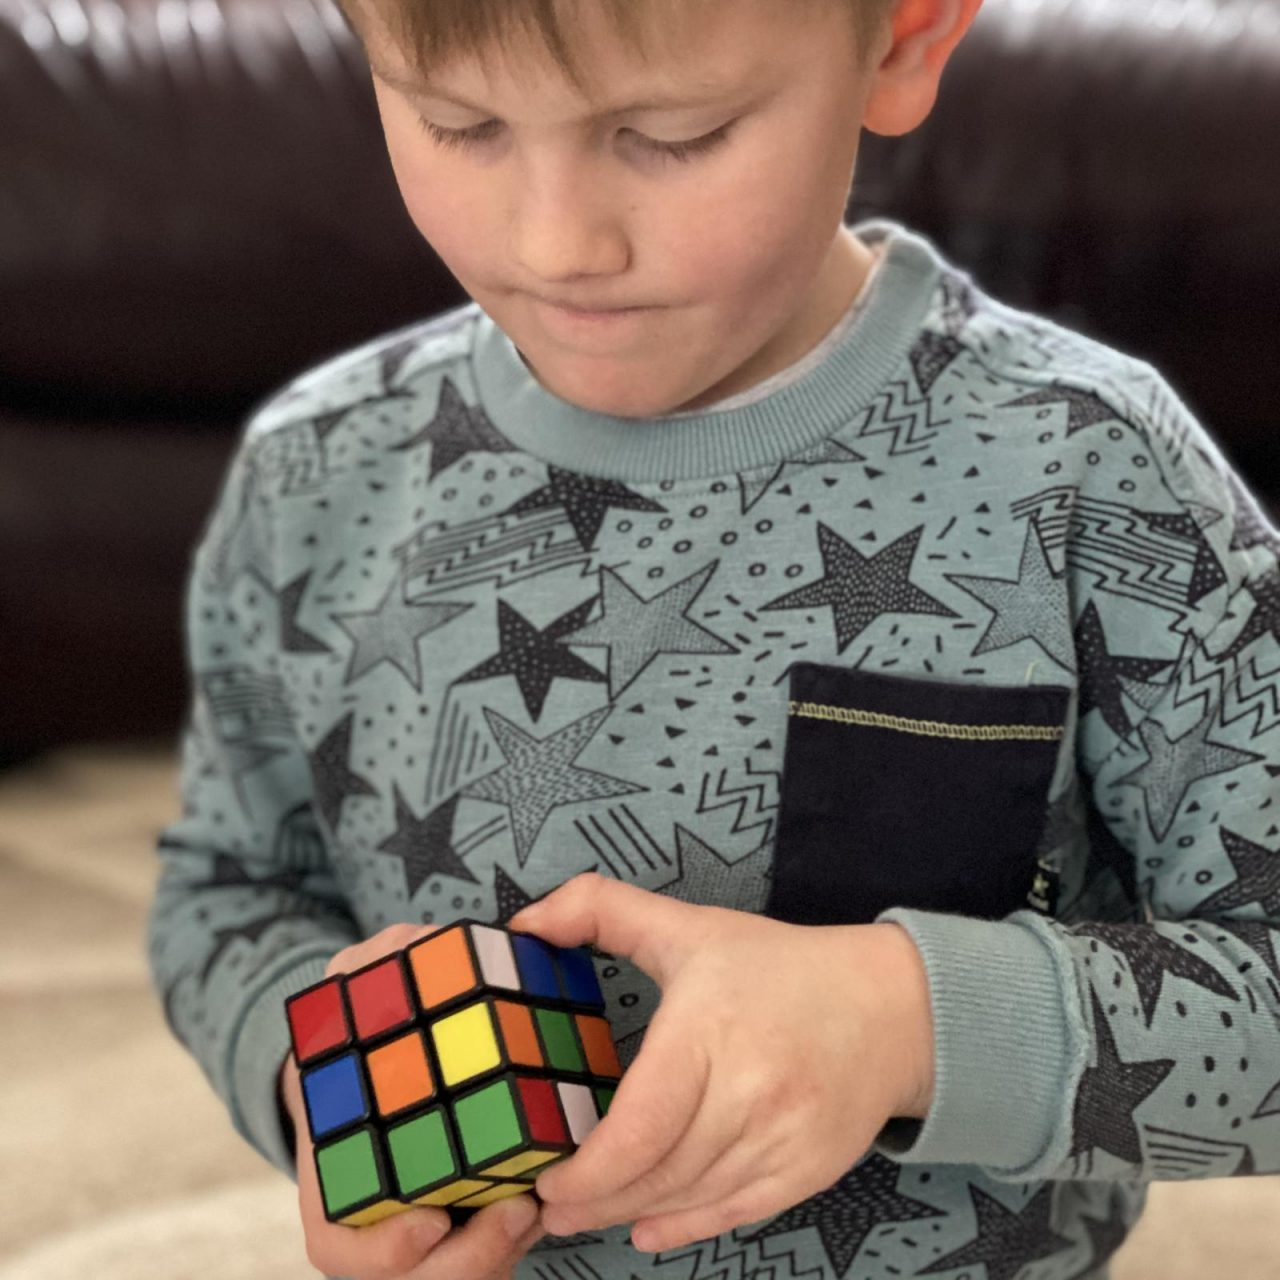 Family games from Ideal Games – Rubik's Cube